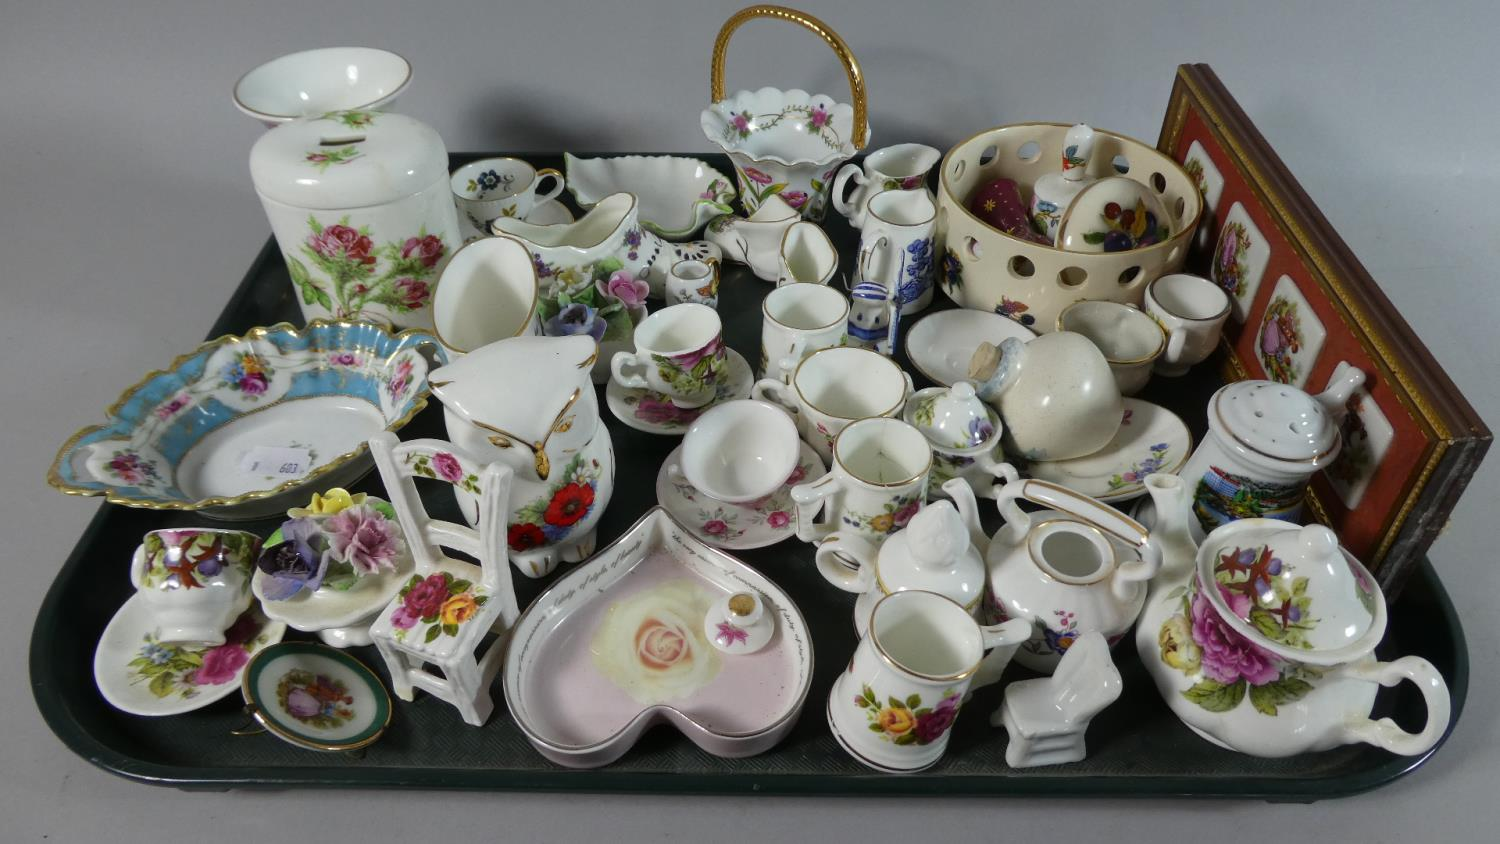 Lot 257 - A Tray Containing Miniature Ceramic Items to Include Teapots, Cups and Saucers, Pin Dishes etc